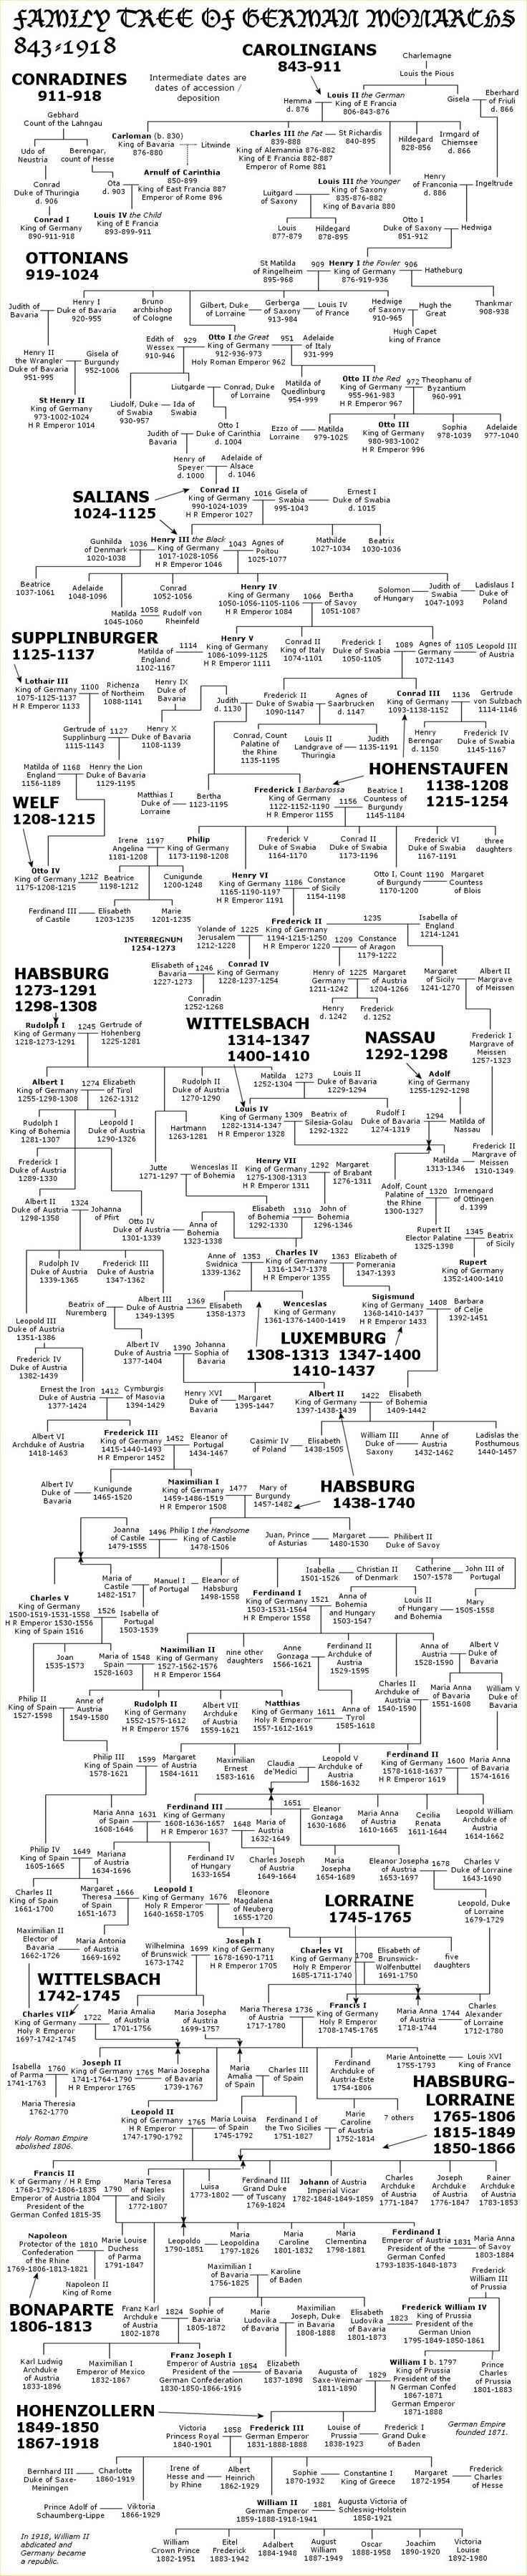 German Monarch Family Tree:  843-1918